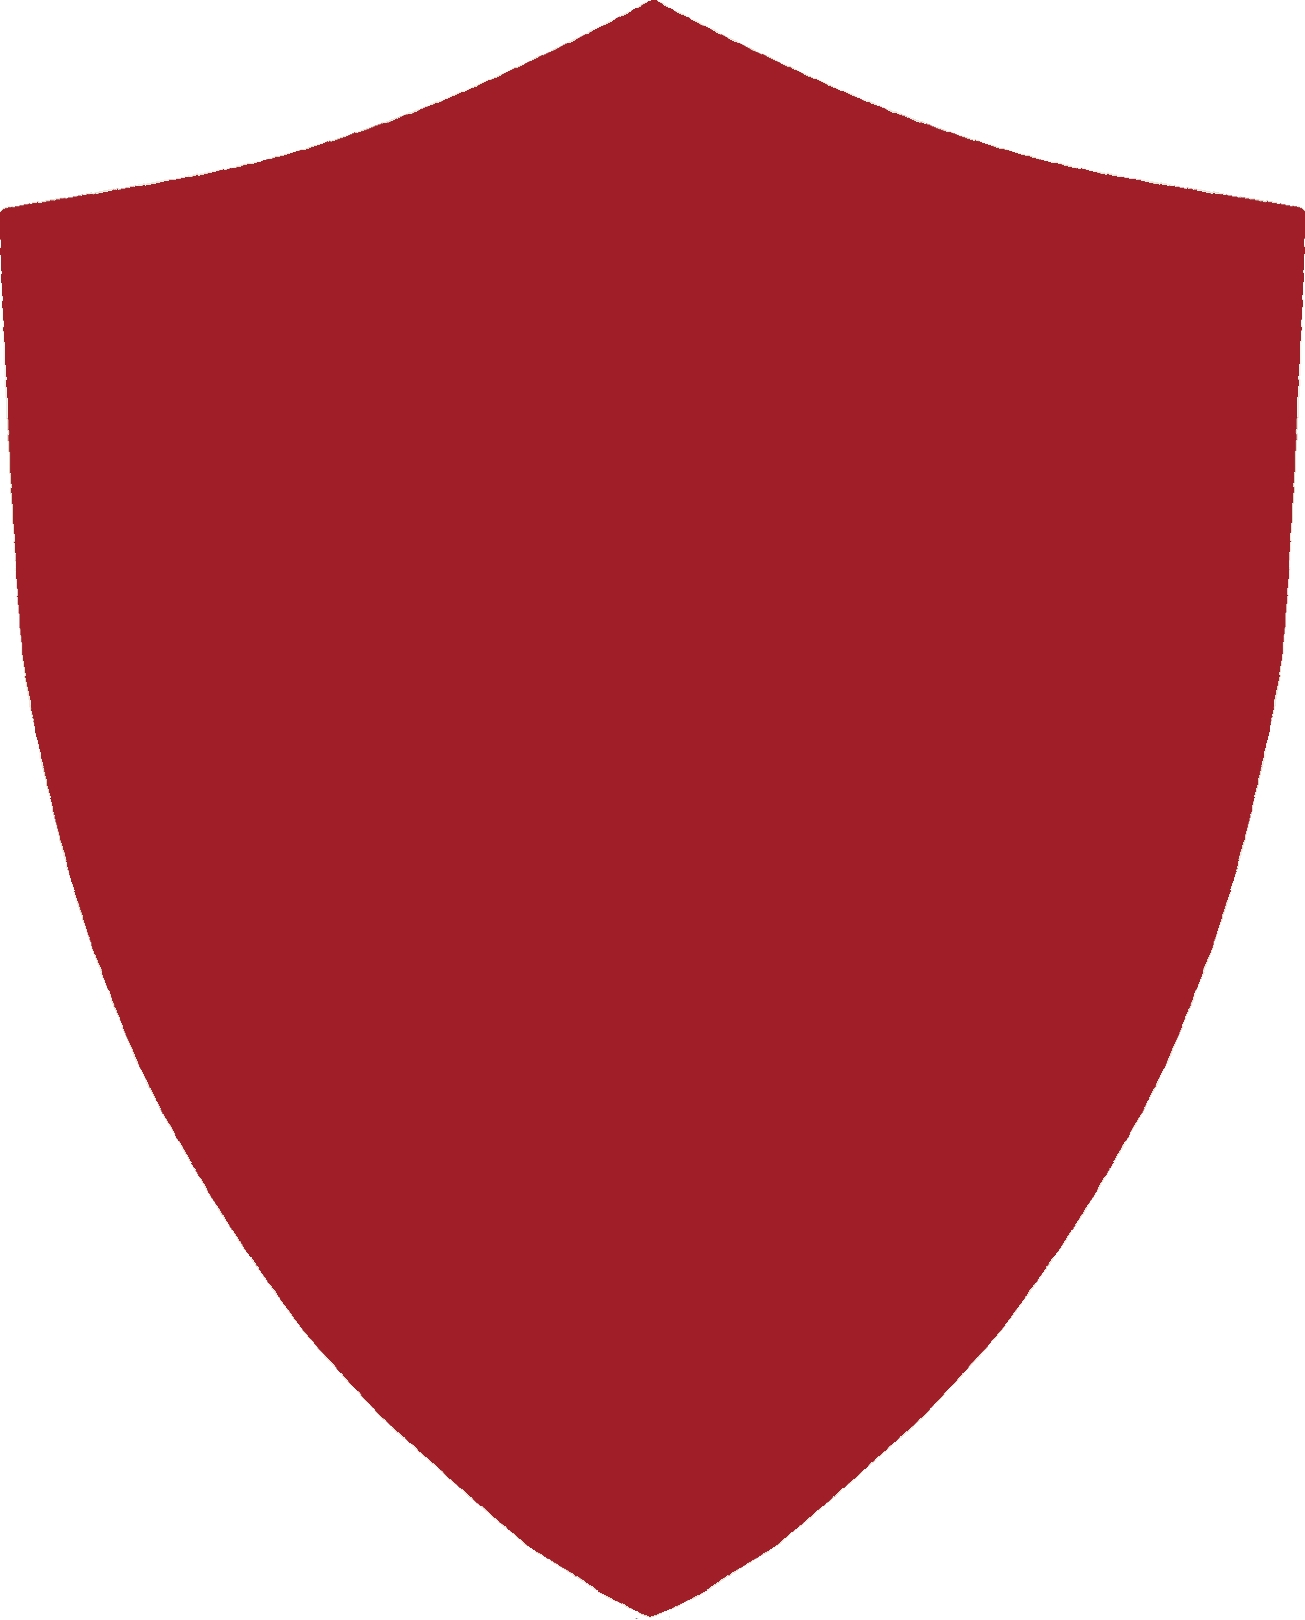 shield inset mirror red free images at clkercom